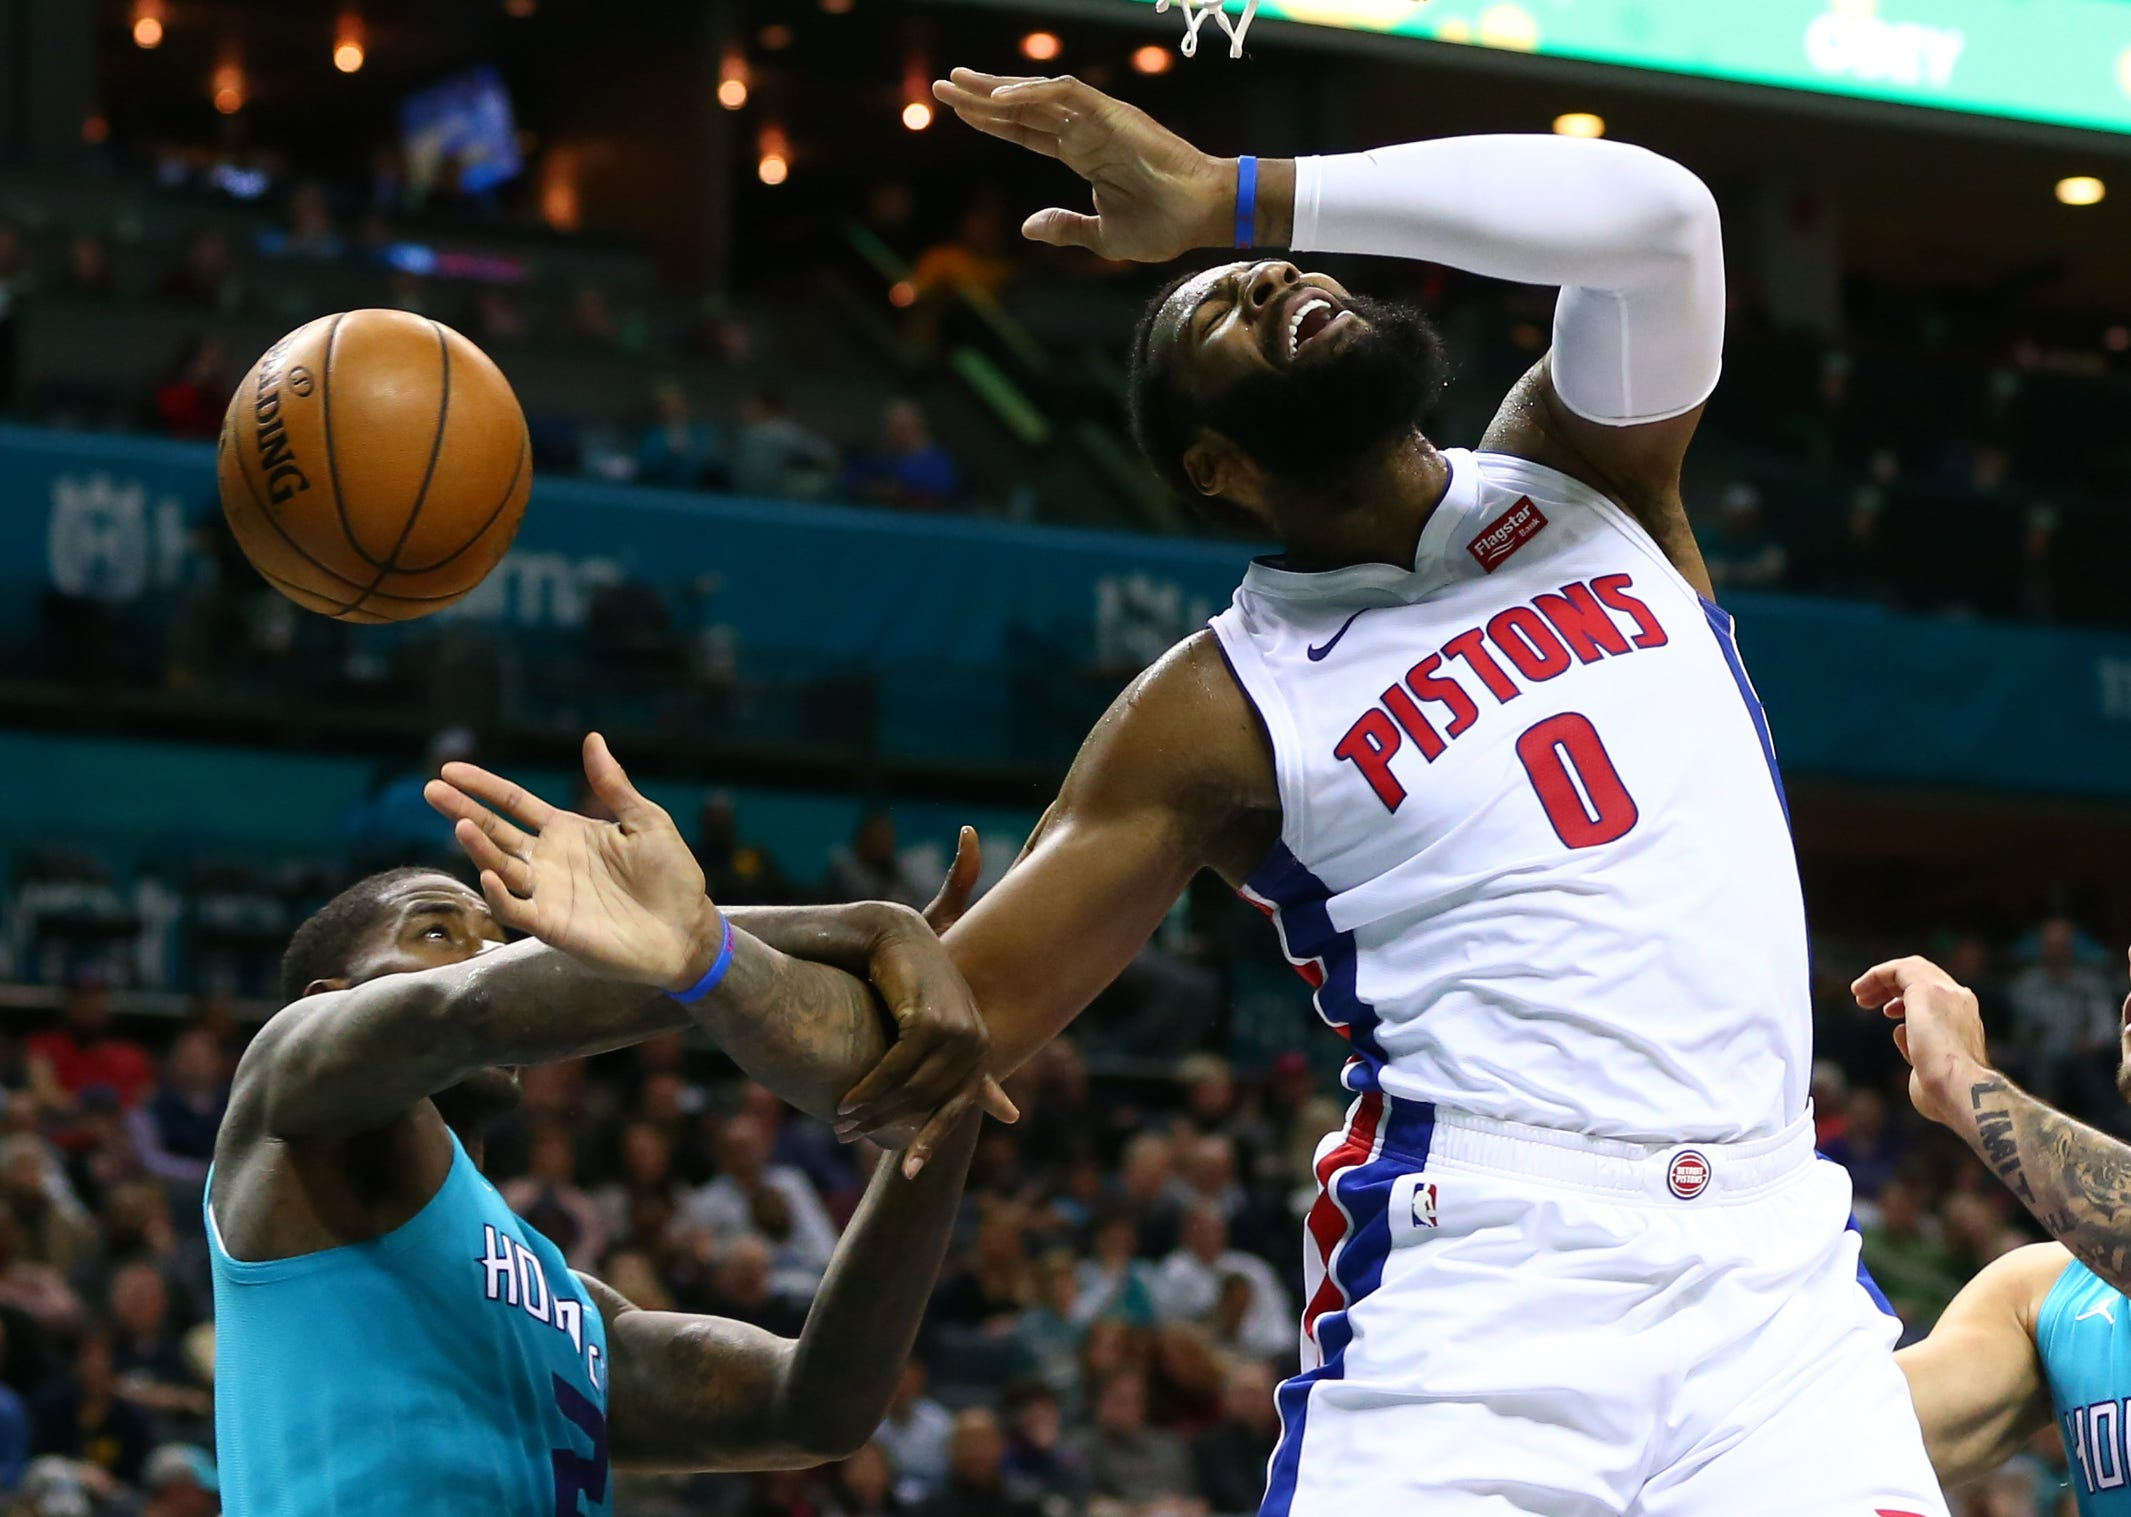 Hornets forward Marvin Williams fouls Pistons center Andre Drummond during the first half in Charlotte, N.C., on Friday, Dec. 21, 2018.